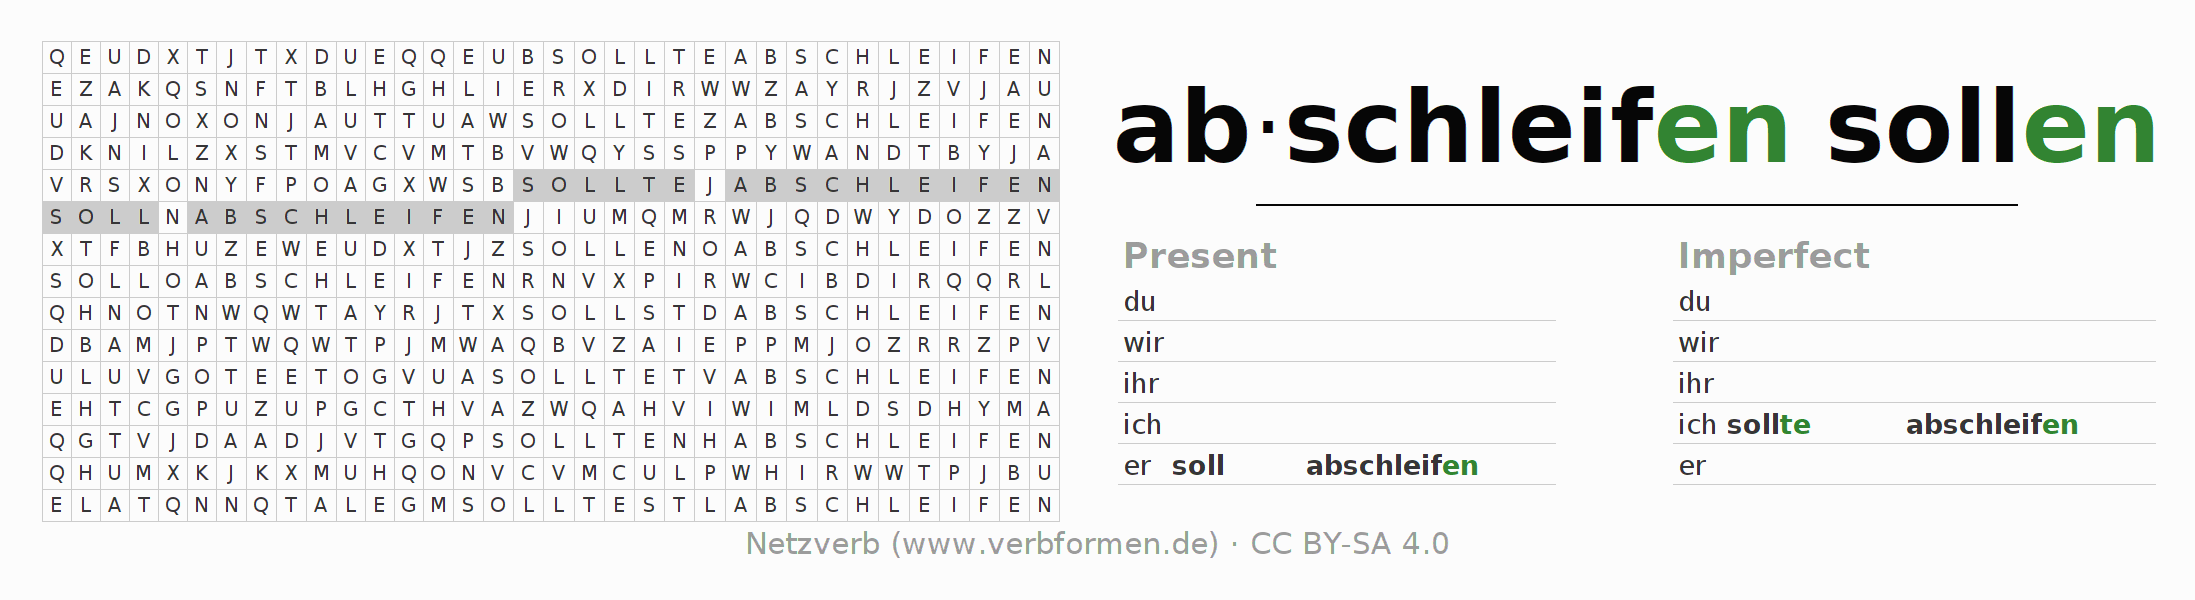 Word search puzzle for the conjugation of the verb soll abschleifen